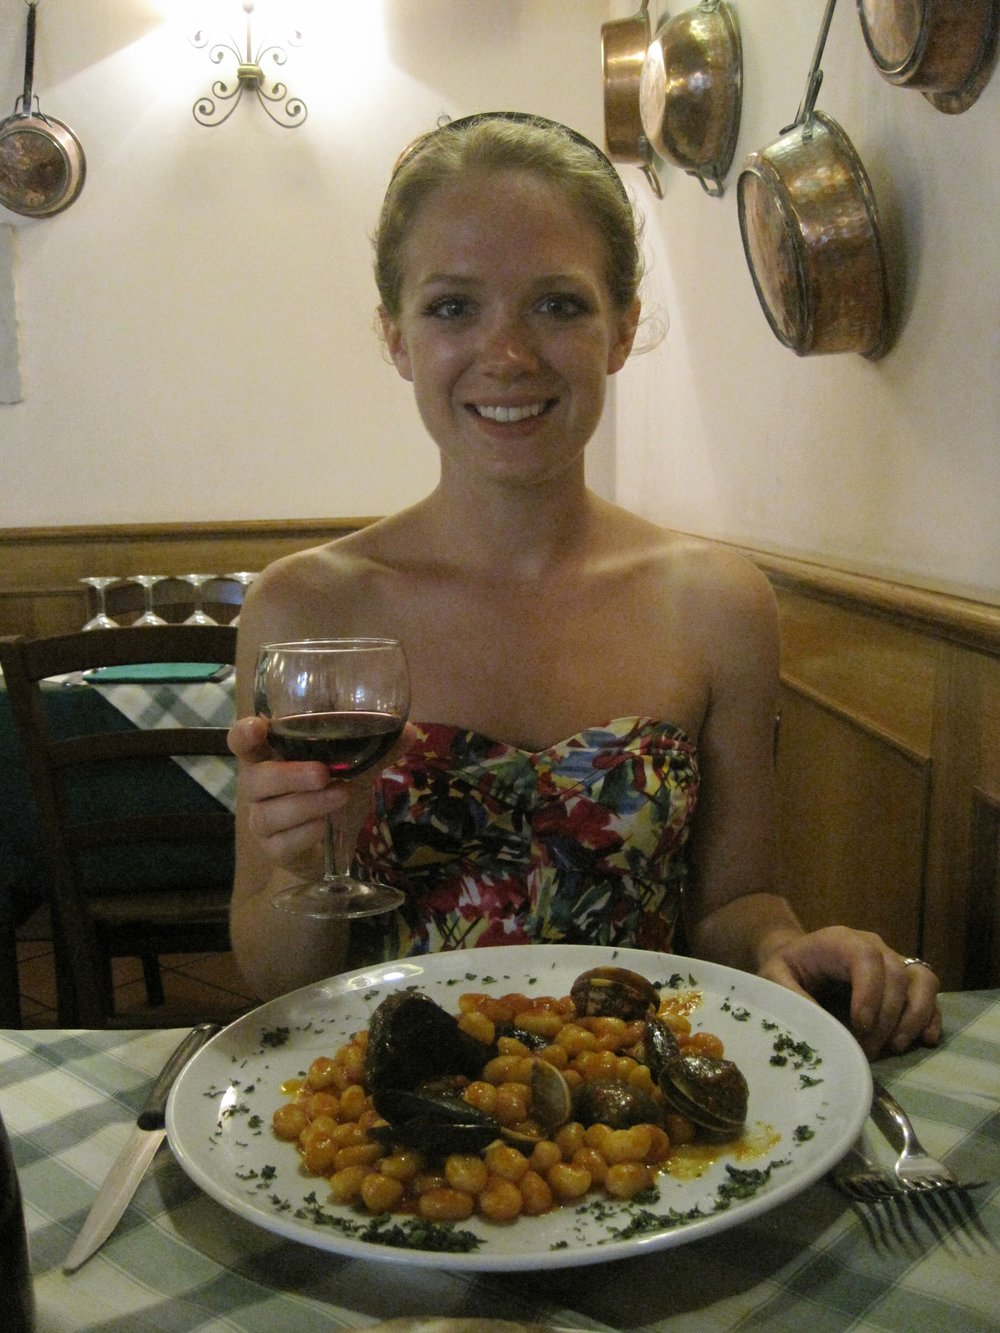 Trying gnocchi for the first time in Trastevere, Rome.